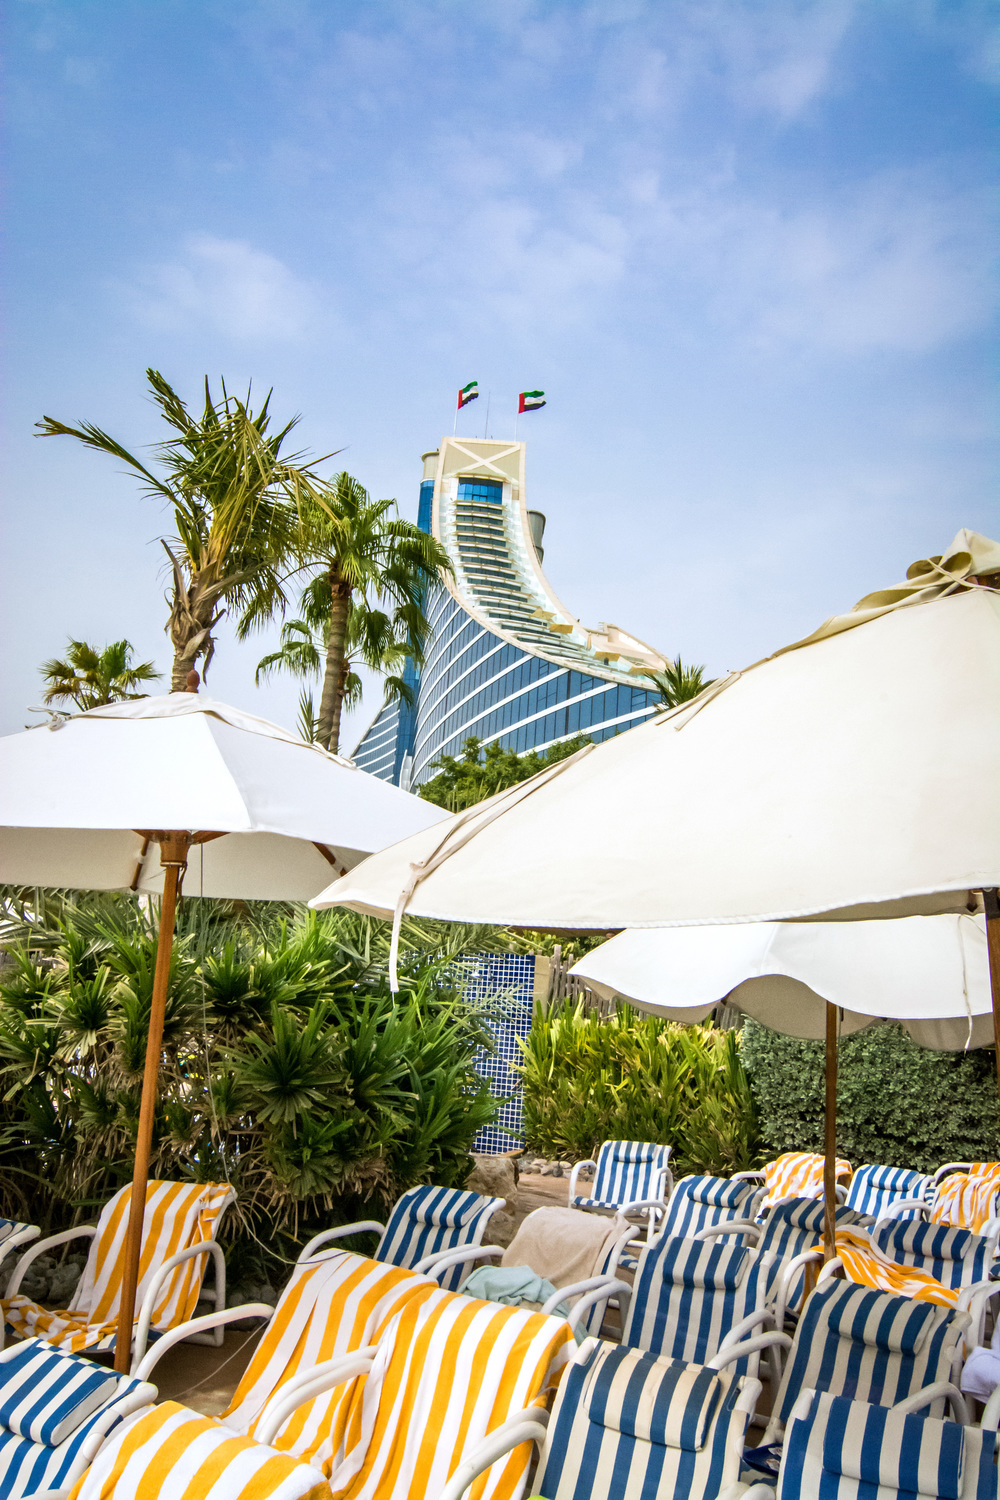 Jumeirah Beach Hotel seen from the wave pool area.